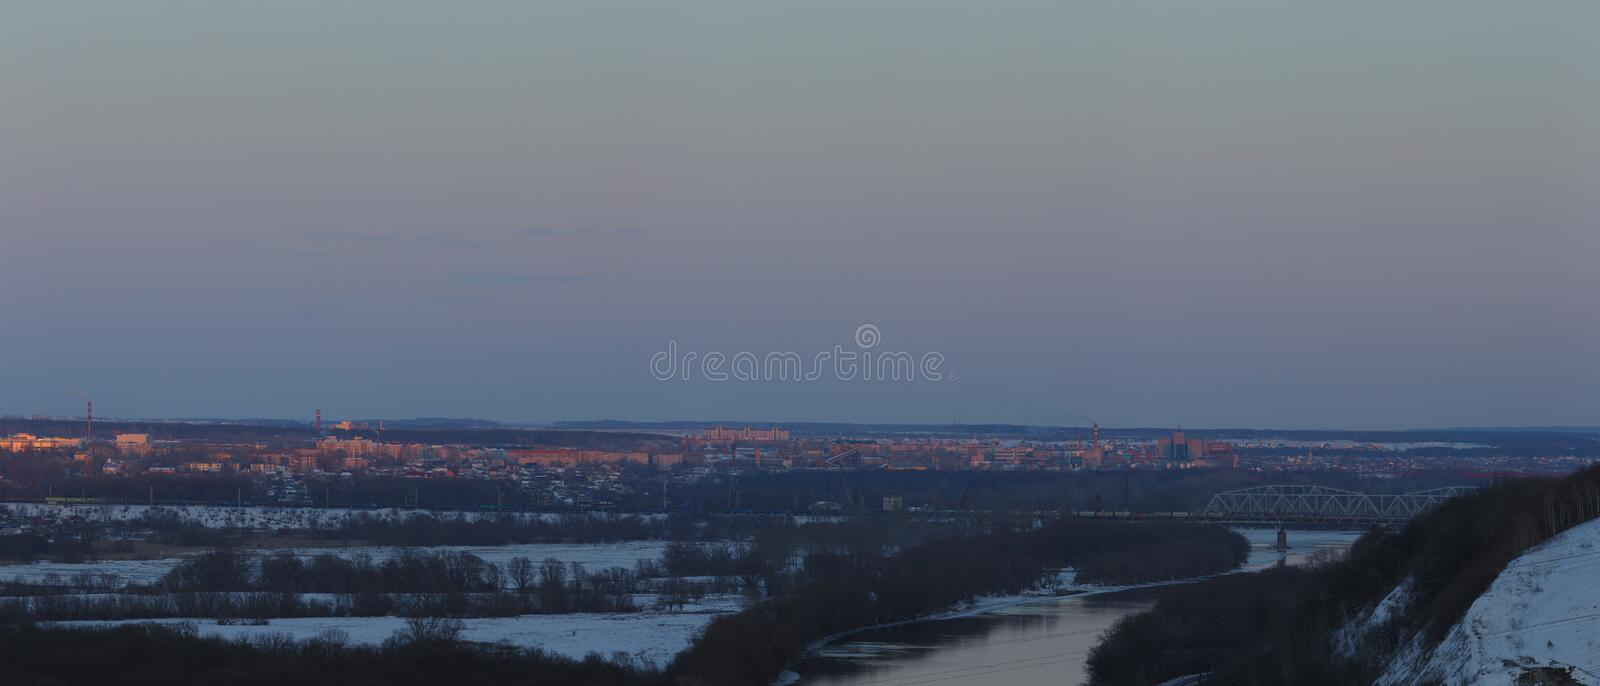 Evening lighting over the city. Sunset time in the twilight sky. Panoramic top view of residential district.  stock photos